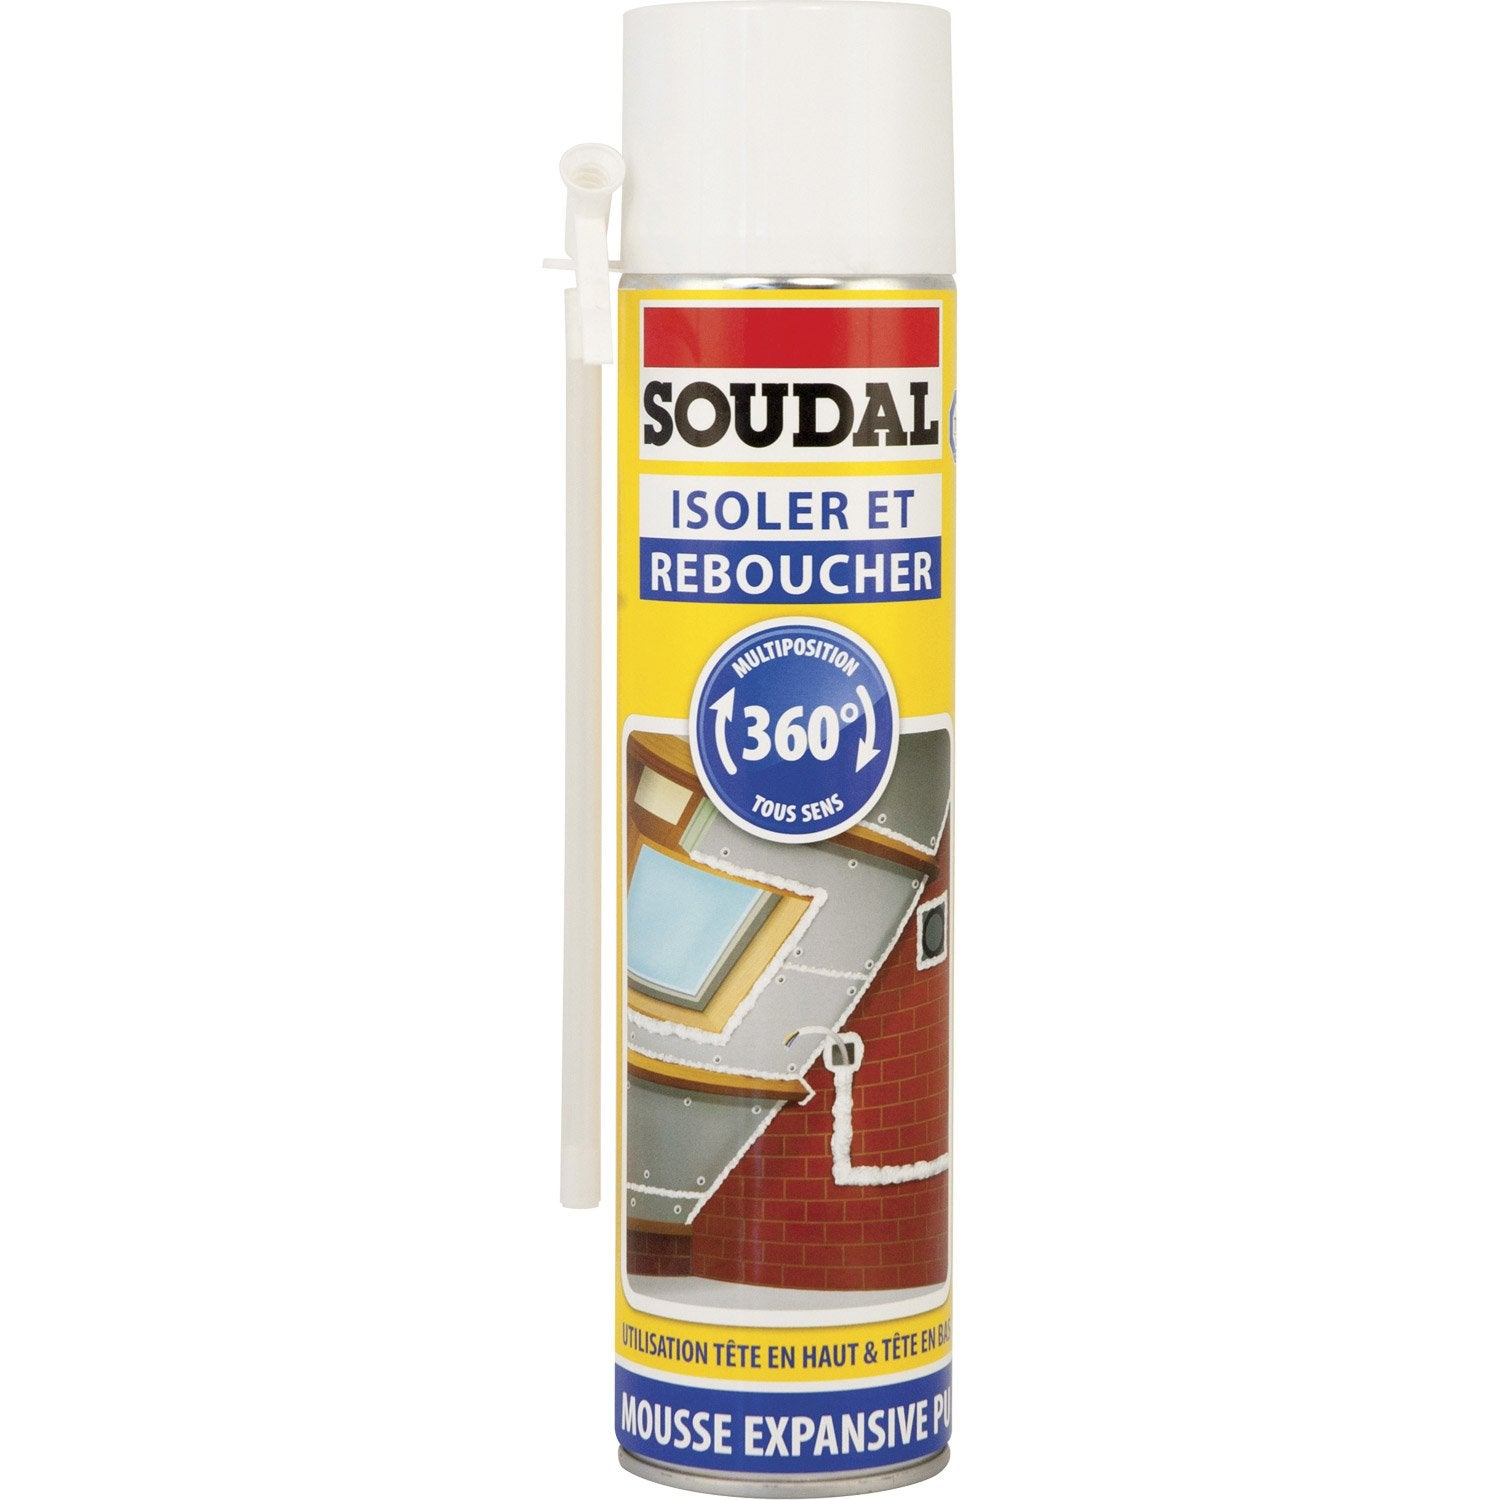 Mousse expansive isoler et reboucher multiposition soudal 300 ml leroy merlin - Anti mousse toiture leroy merlin ...